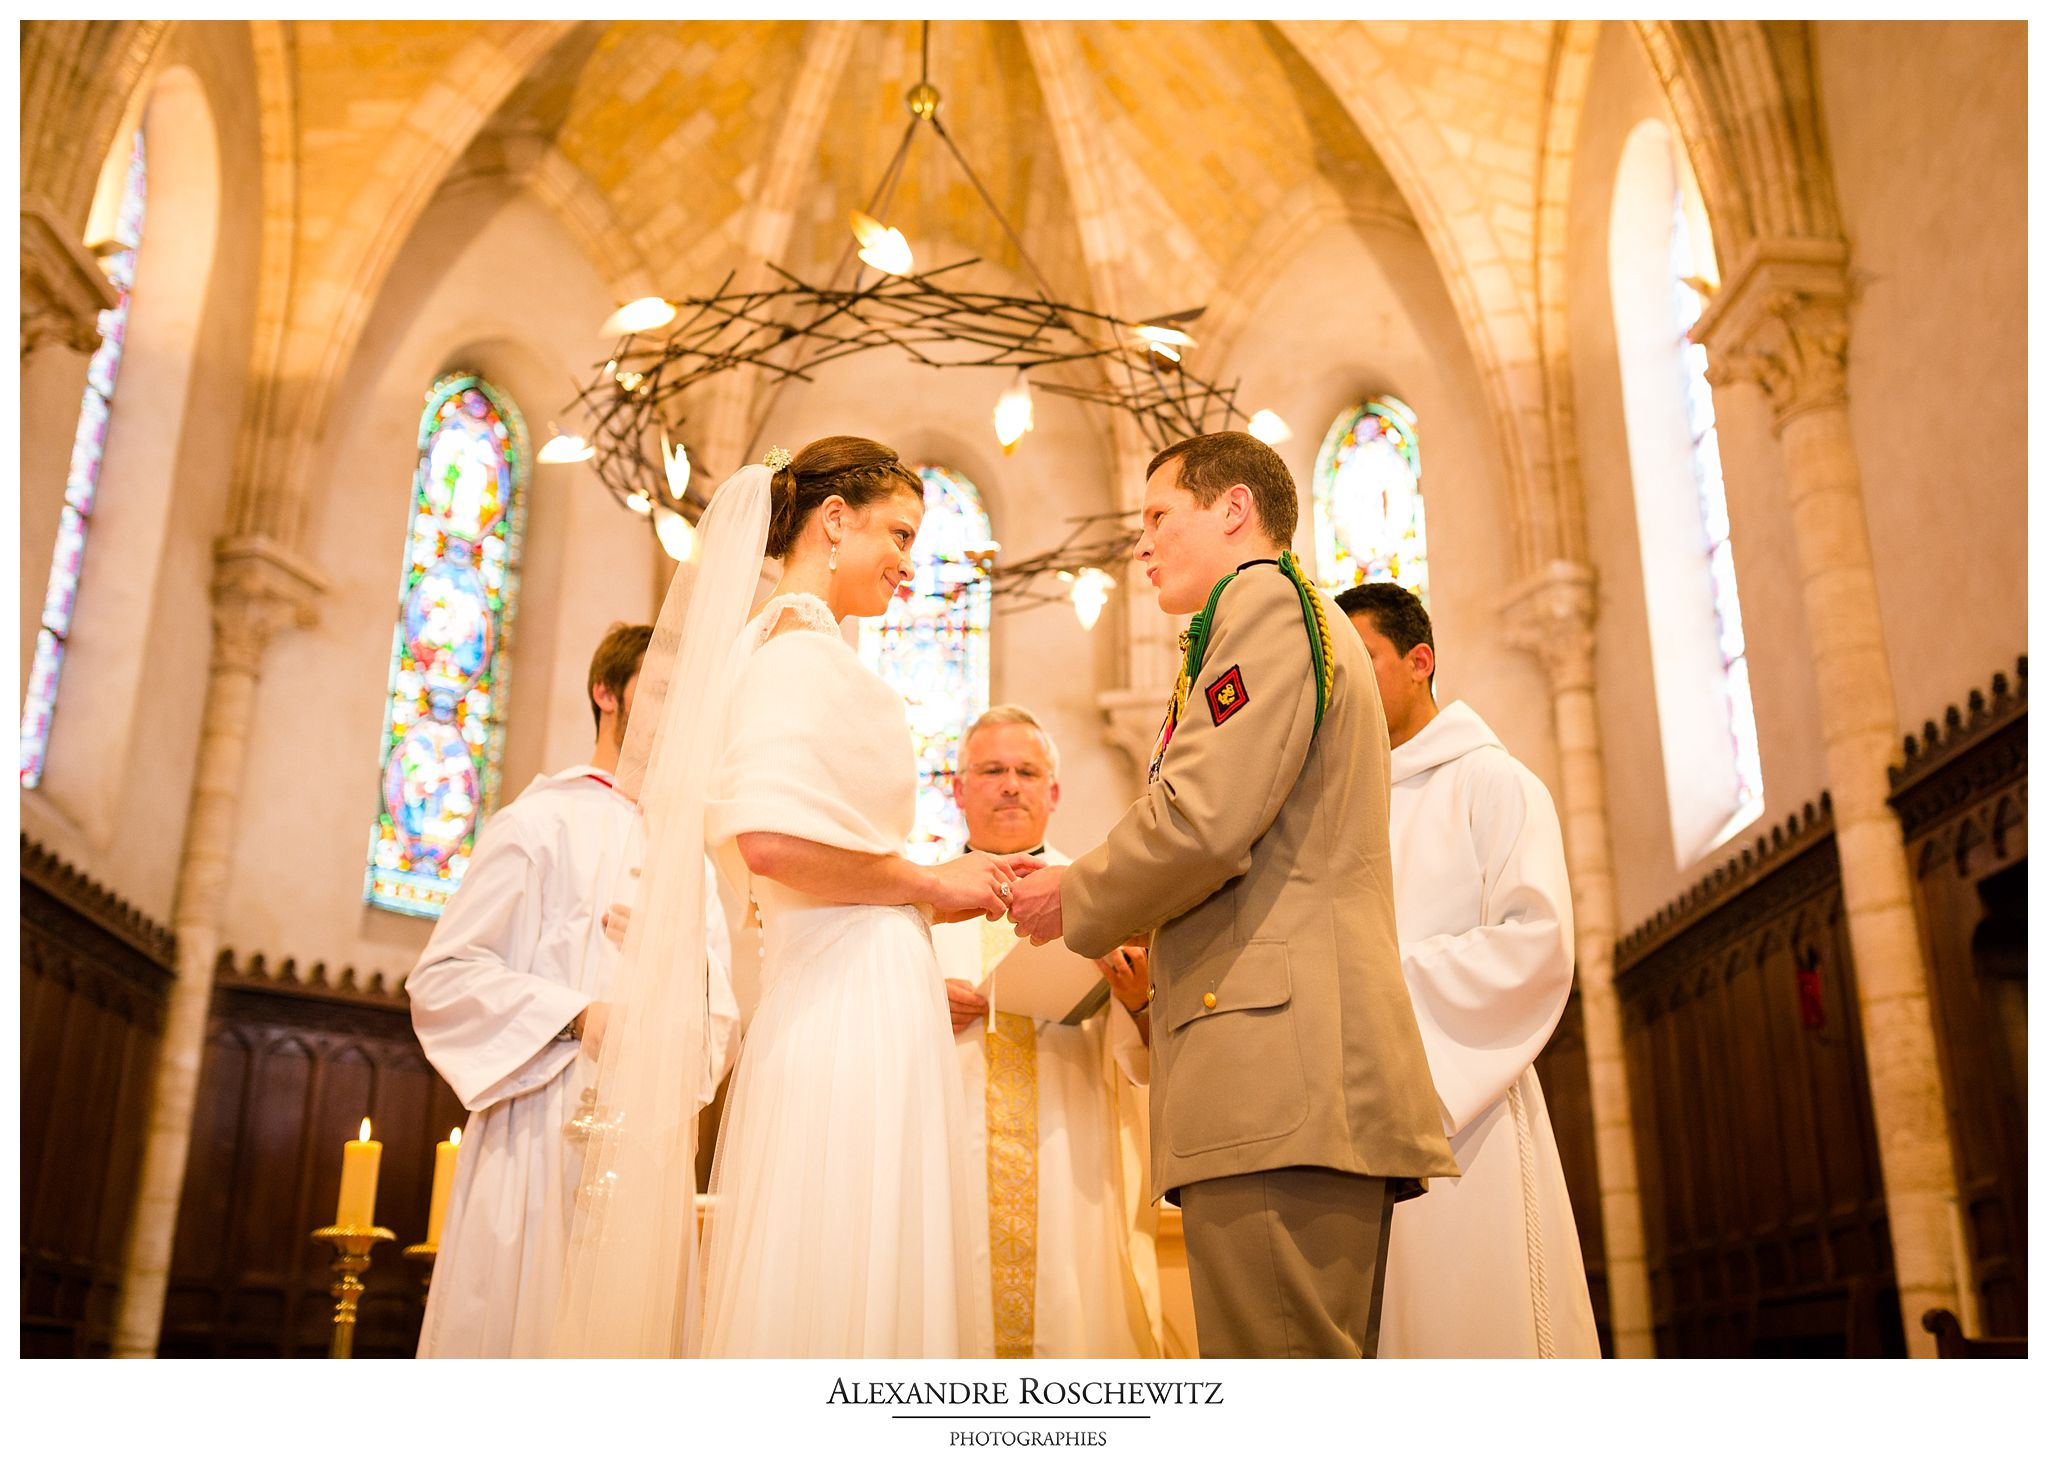 mariage-bourg-gironde-chateau-citadelle-religieux-militaire-clemence-luc-alexandre-roschewitz-photographies_1108_2048px